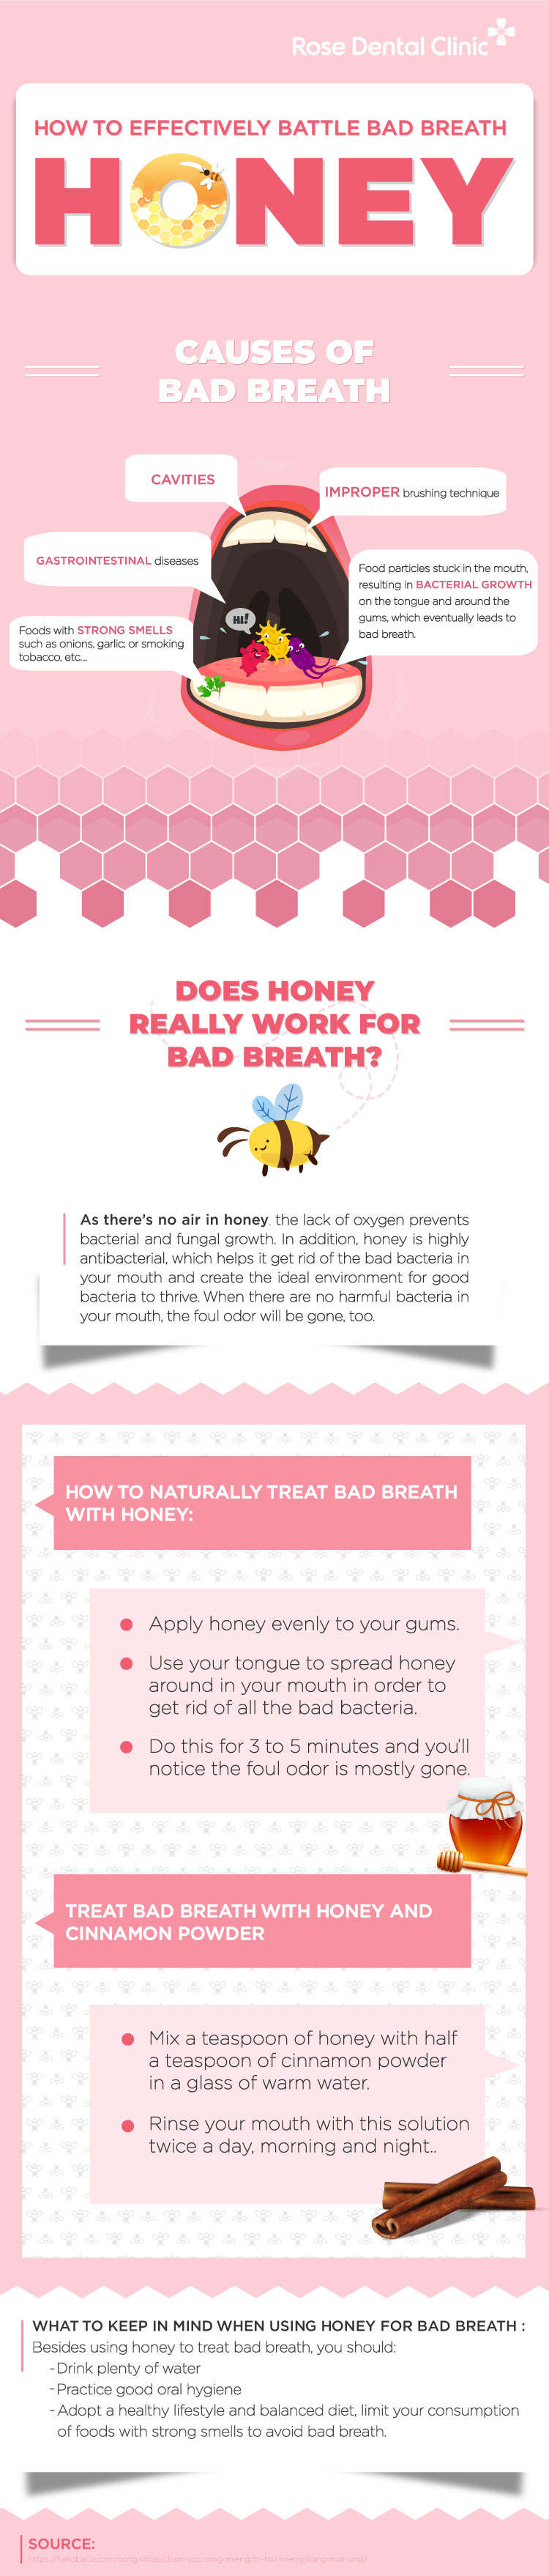 How to effectively battle bad breath with honey